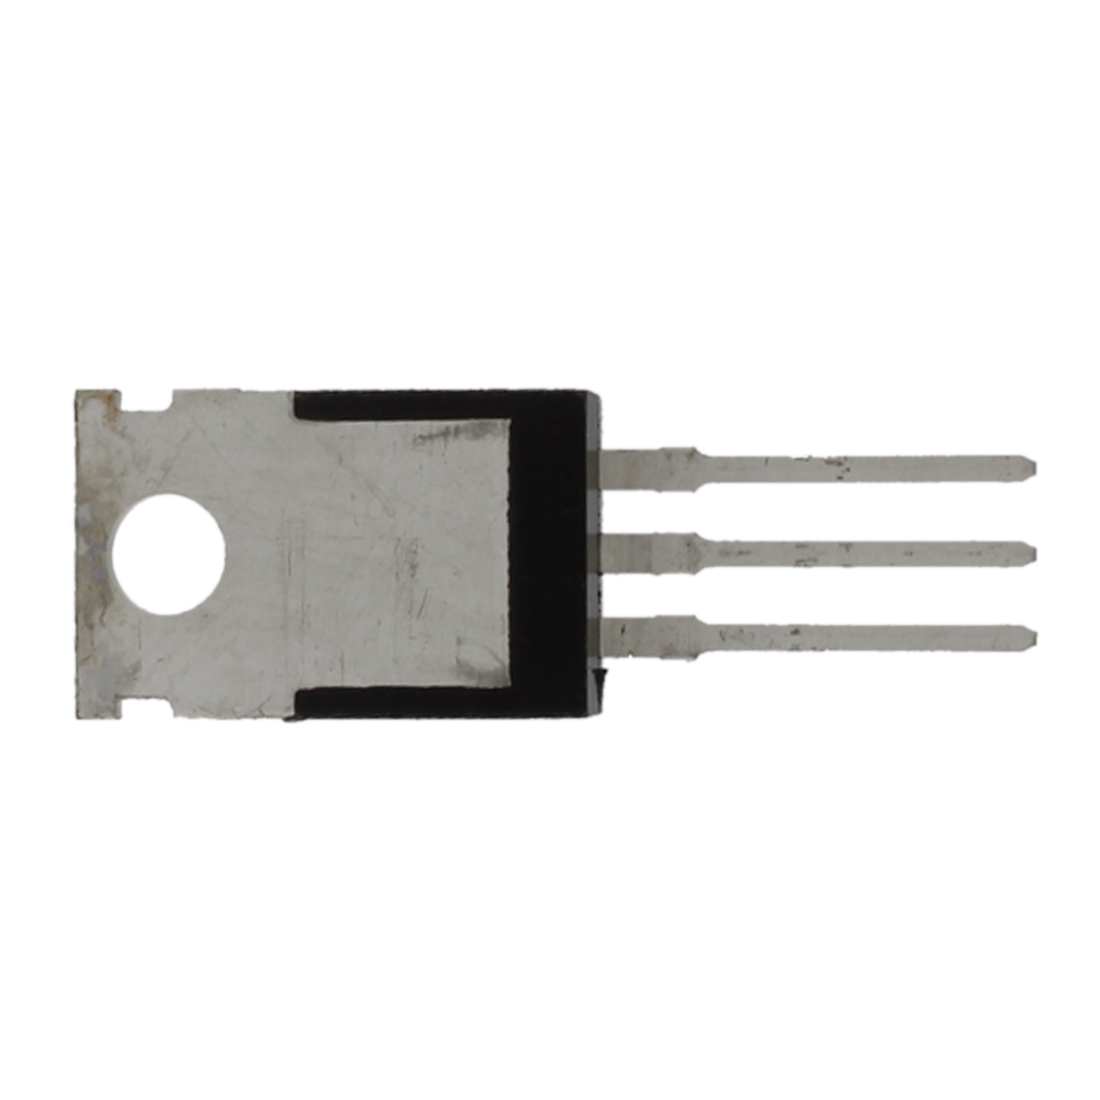 10pc Irf3205 Irf3205pbf Fast Switching Power Mosfet Transistor N Circuit Channel C1u7